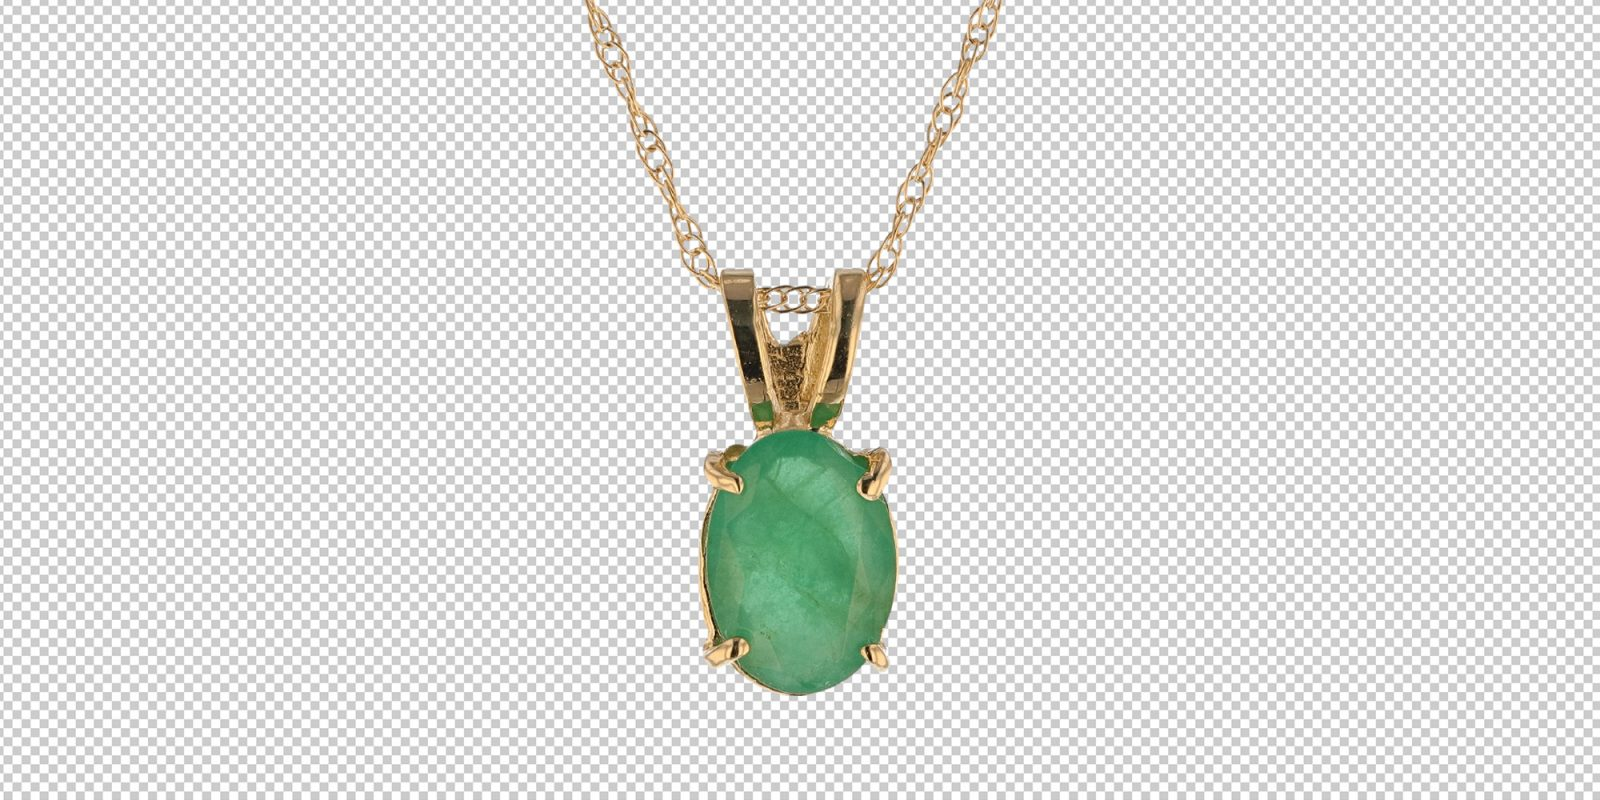 green necklace transparent bck